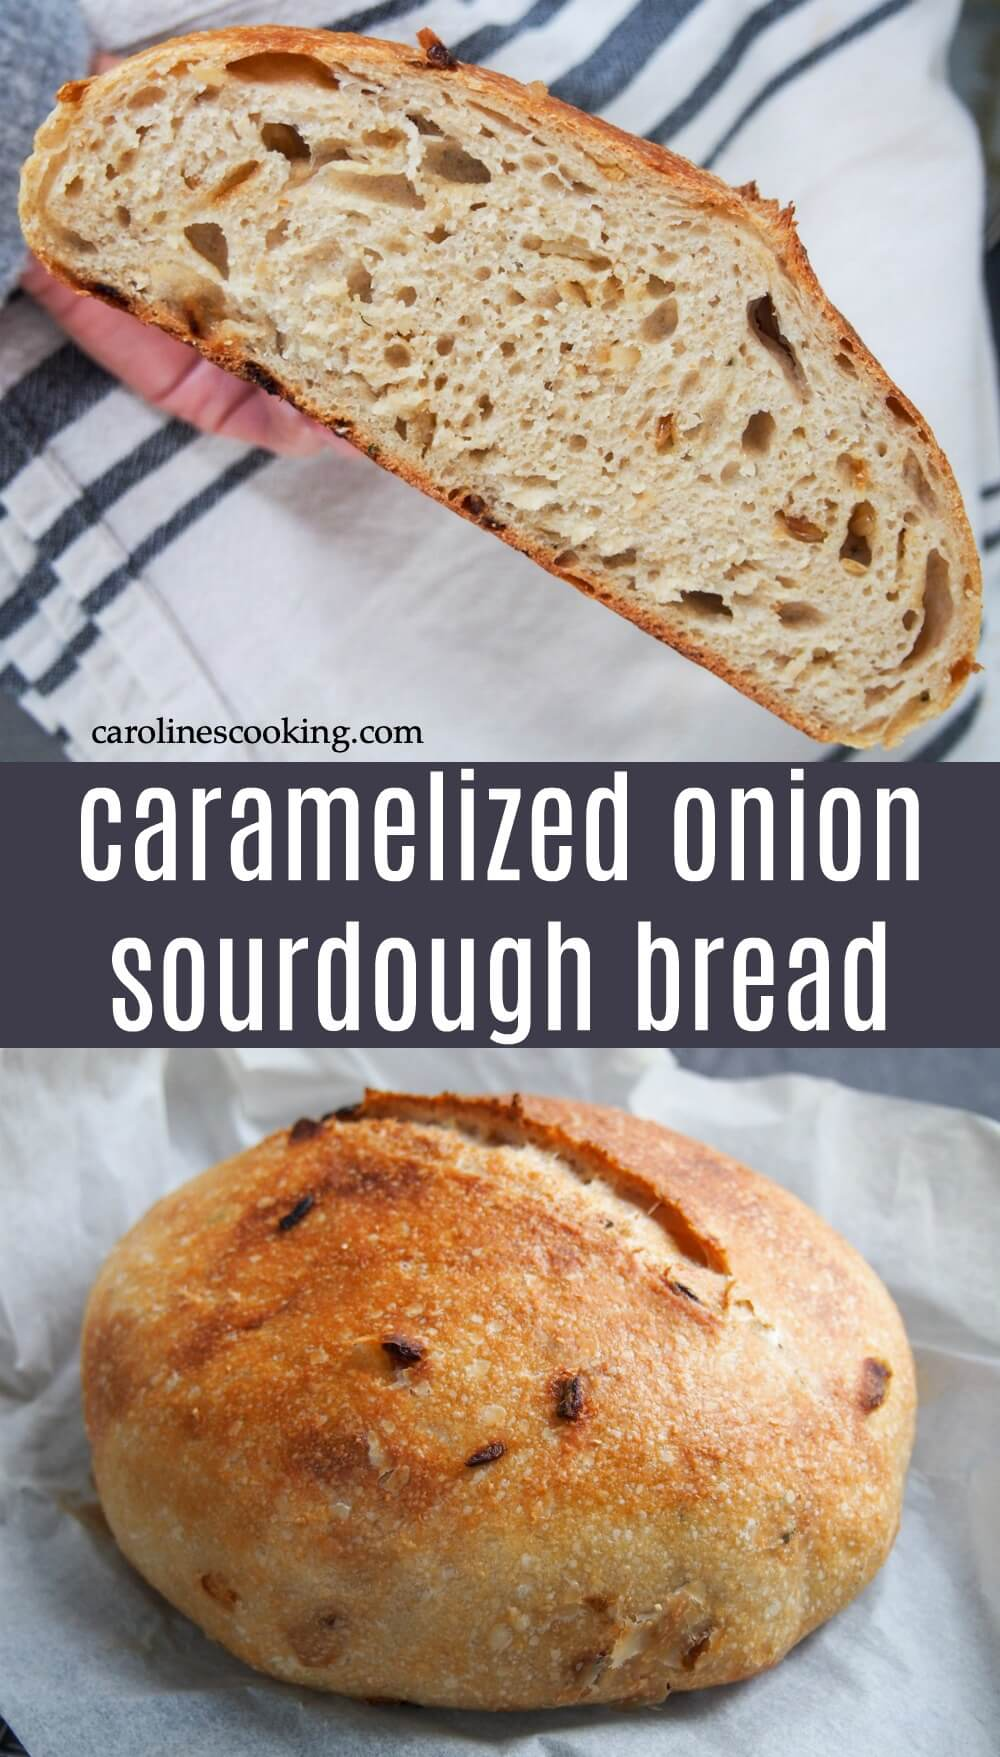 This naturally leavened sourdough bread has such a wonderful flavor - the classic sourdough tang with sweet bursts from the onions are such a great combination. Crisp outside, tender inside, it's great with just a touch of butter. Yes, it takes a bit of time, but most is hands off and believe me, it's well worth it. #sourdough #bread #baking